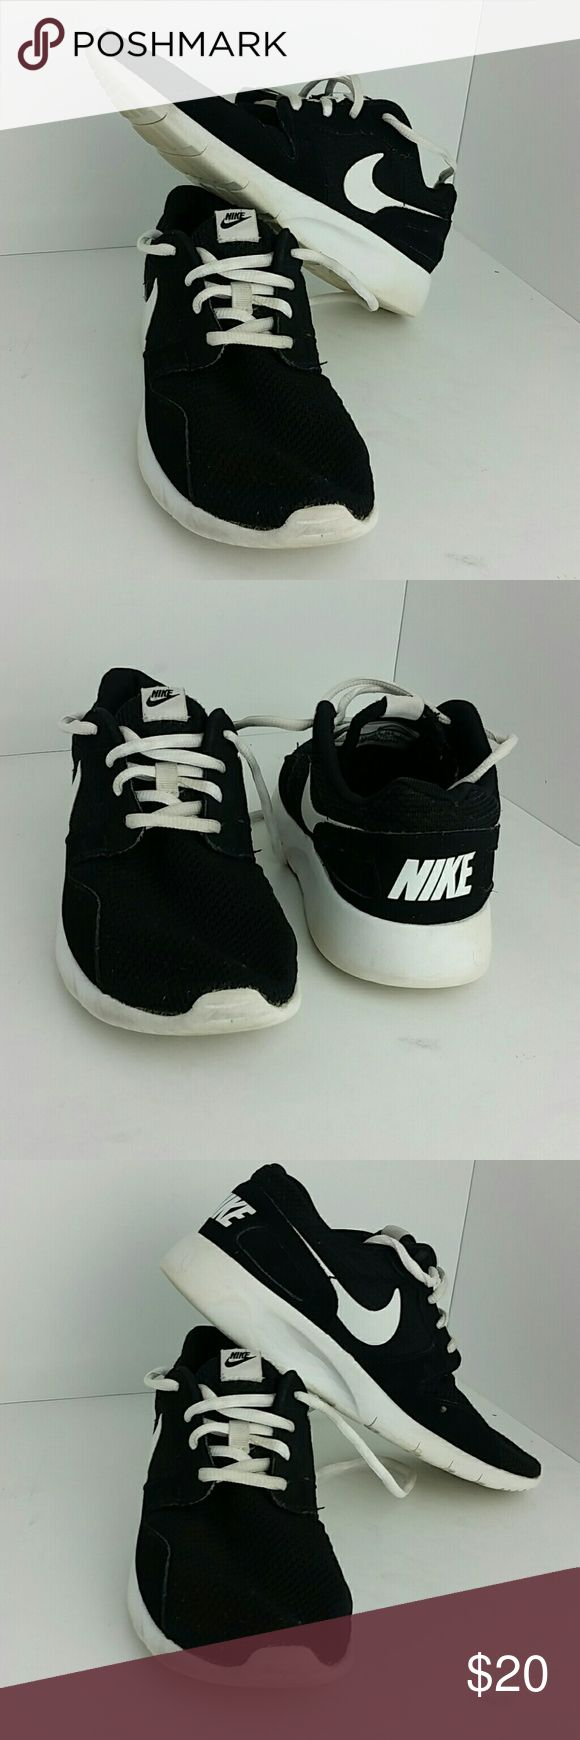 NIKE KAISHI WOMEN/YOUTH SHOES IN GOOD CONDITION WITH MINOR SCUFF WHICH IS NOT NOTICEABLE WHEN YOU HAVE IT ON   THIS IS A YOUTH SIZE 6Y WHICH IS WOMEN SIZE 7.5  SKE # TV NIKE Shoes Athletic Shoes